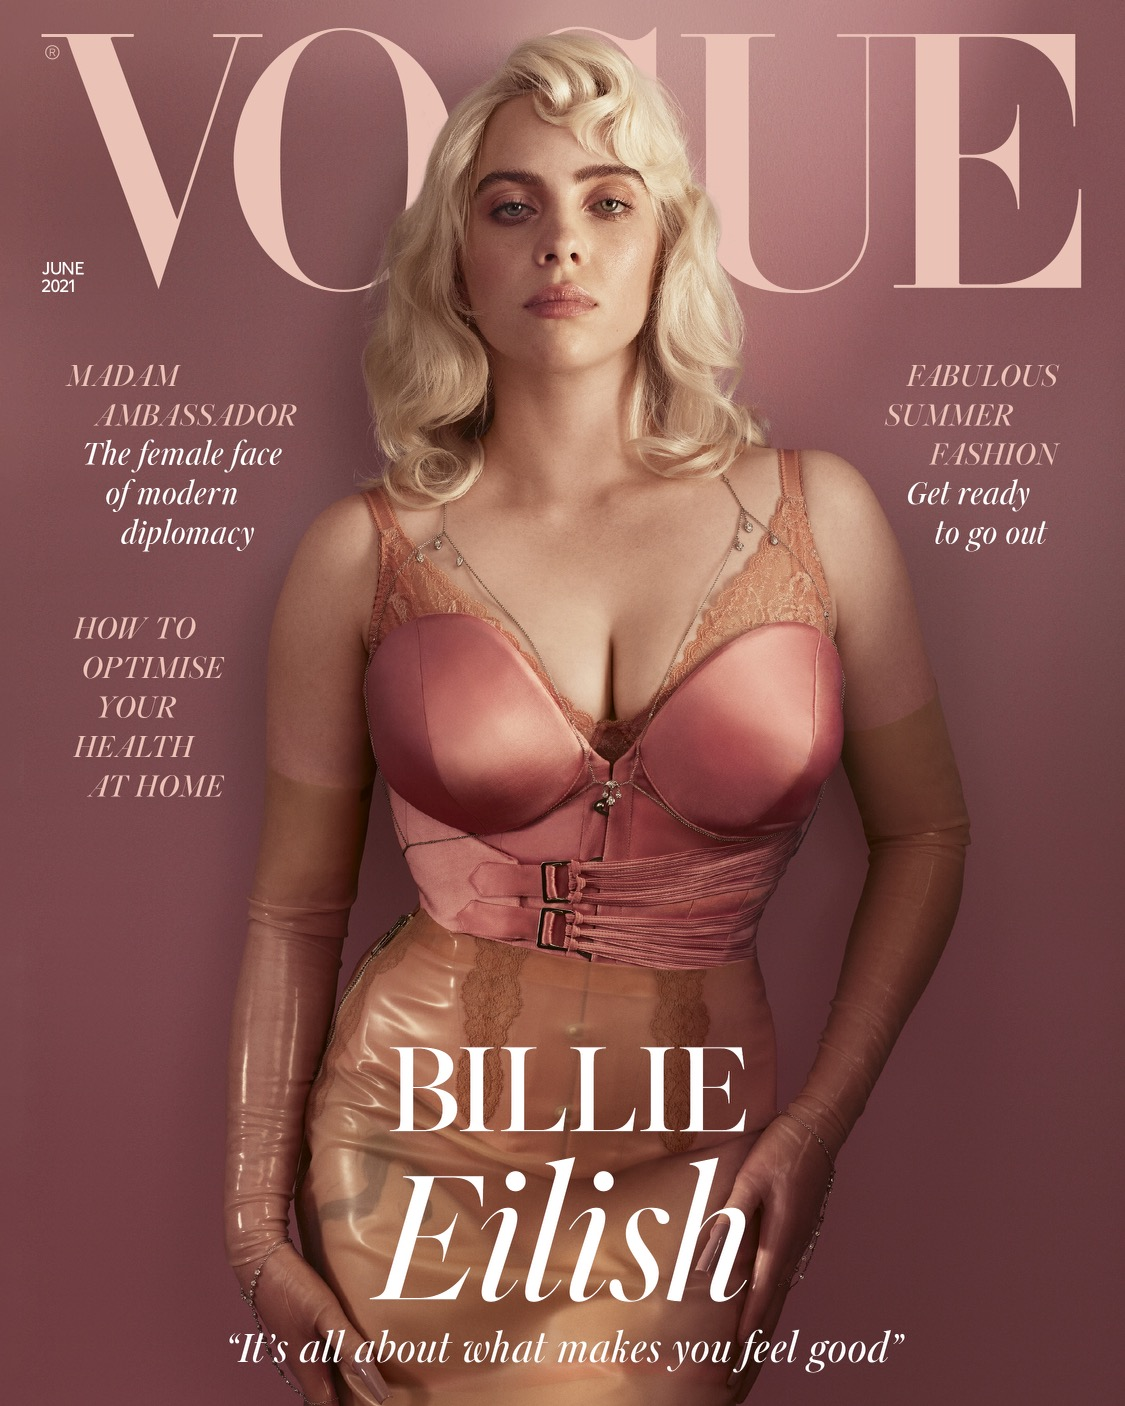 Billie Eilish covers the June issue of British Vogue in a custom Gucci corset and skirt